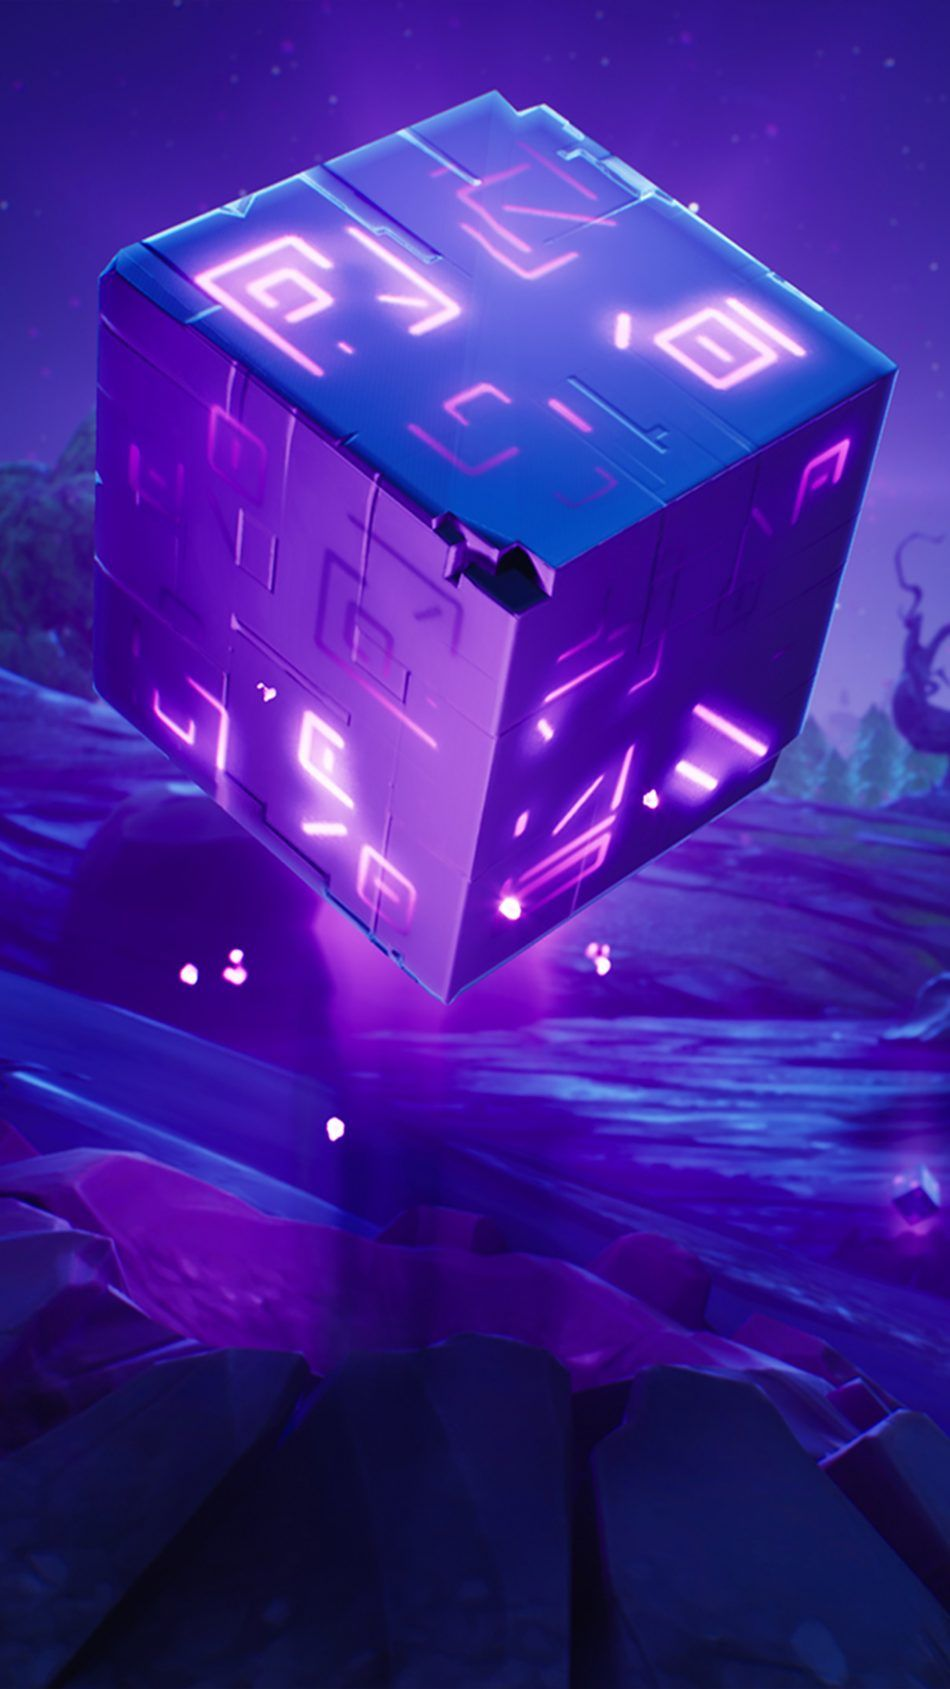 Fortnite Shadow Stone 4k Ultra Hd Mobile Wallpaper Android Wallpaper Wallpaper Images Hd Game Wallpaper Iphone